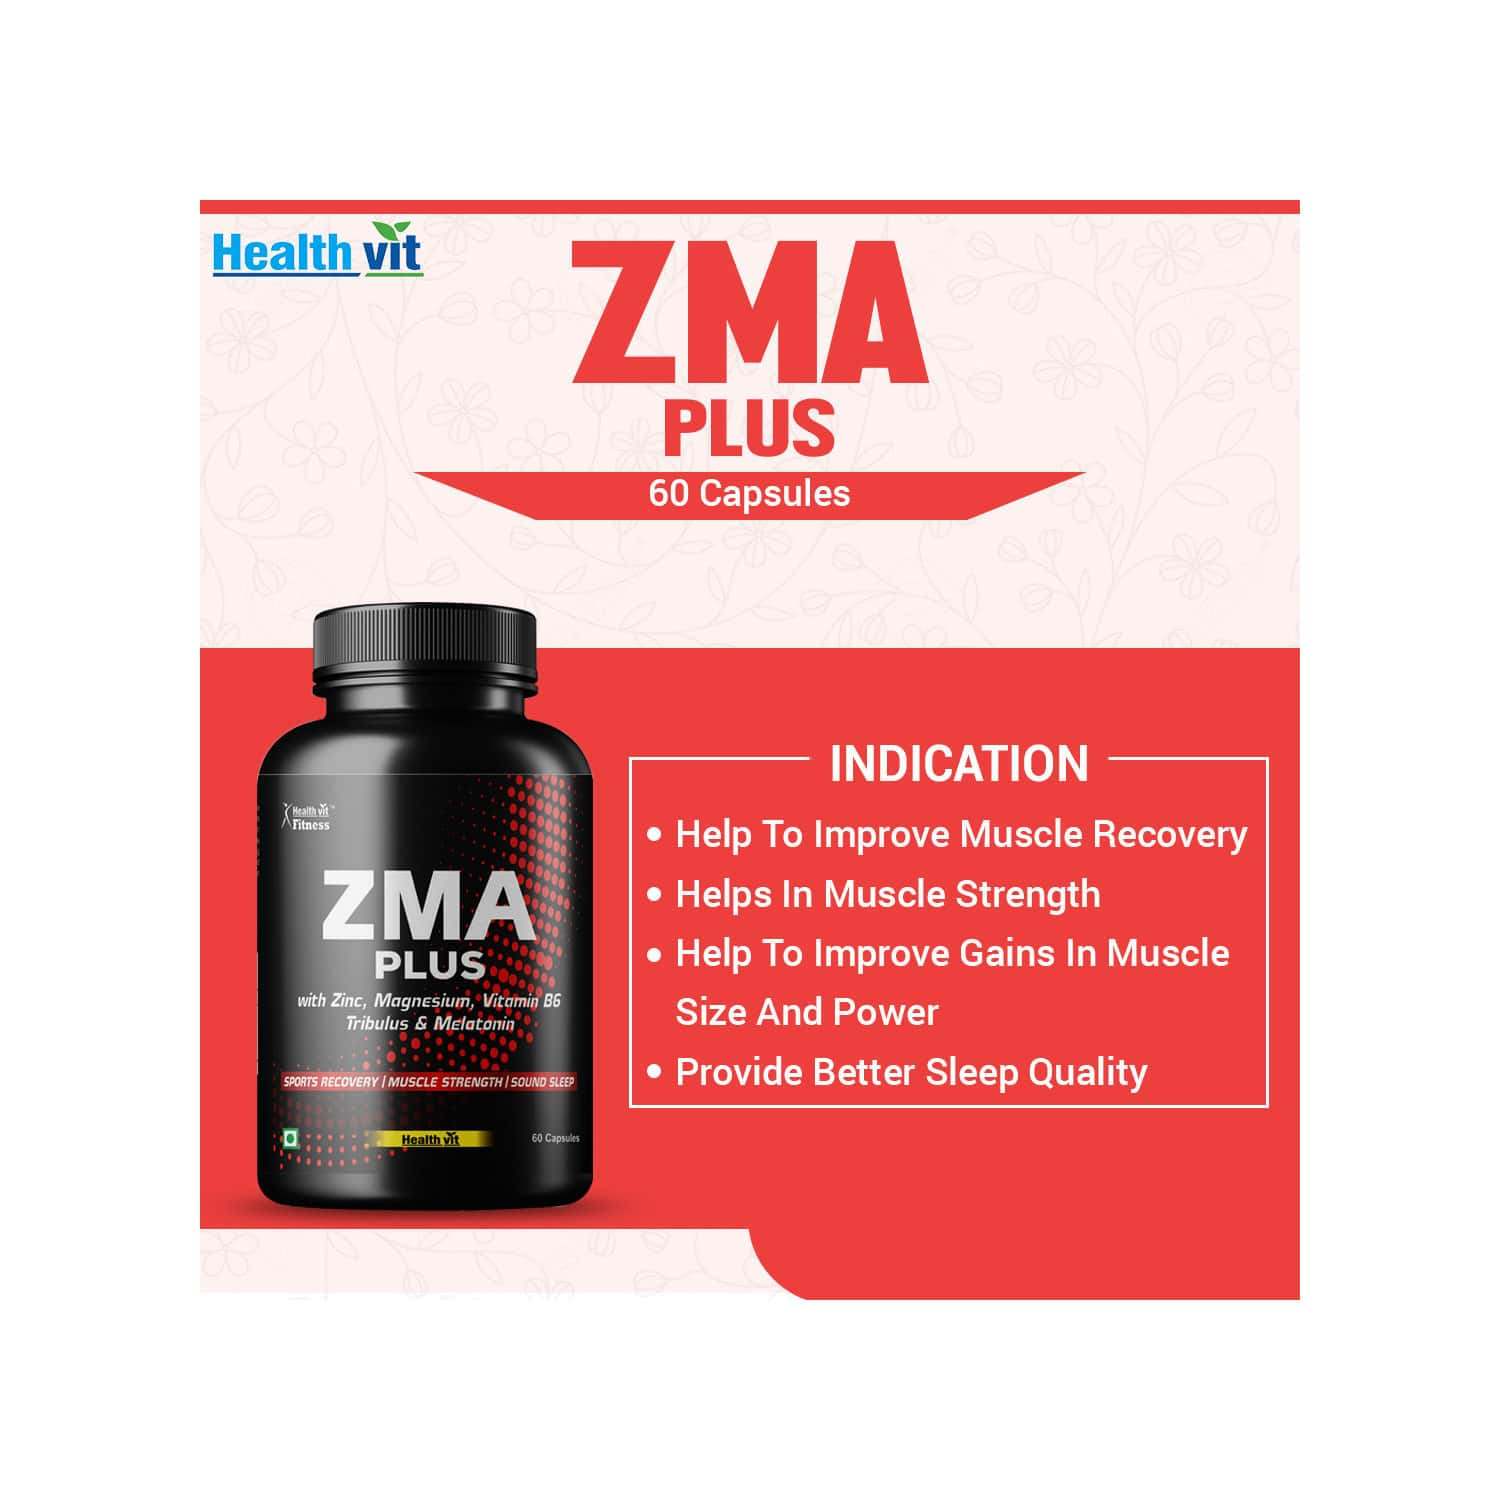 Healthvit Fitness Triple Strength Zma Plus, Sports Recovery & Sleep Support Supplement With Zinc, Magnesium, Vitamin B6, Tribulus & Melatonin - 60 Capsules